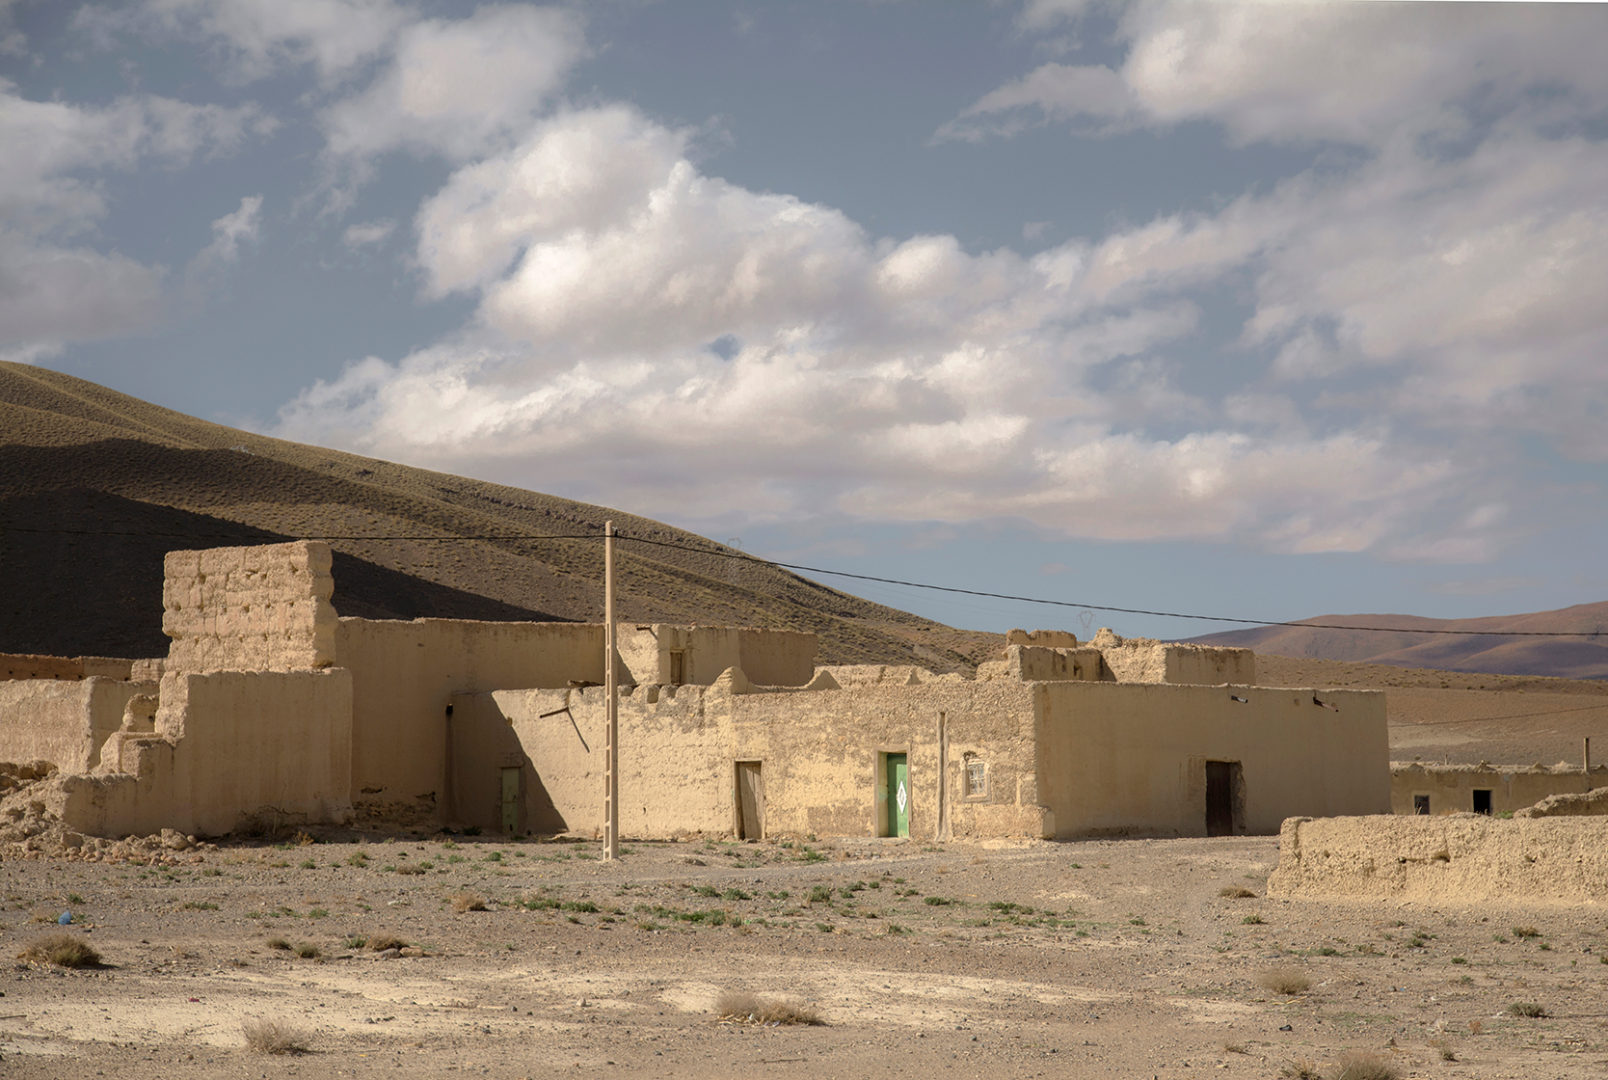 A house in the Mid Atlas